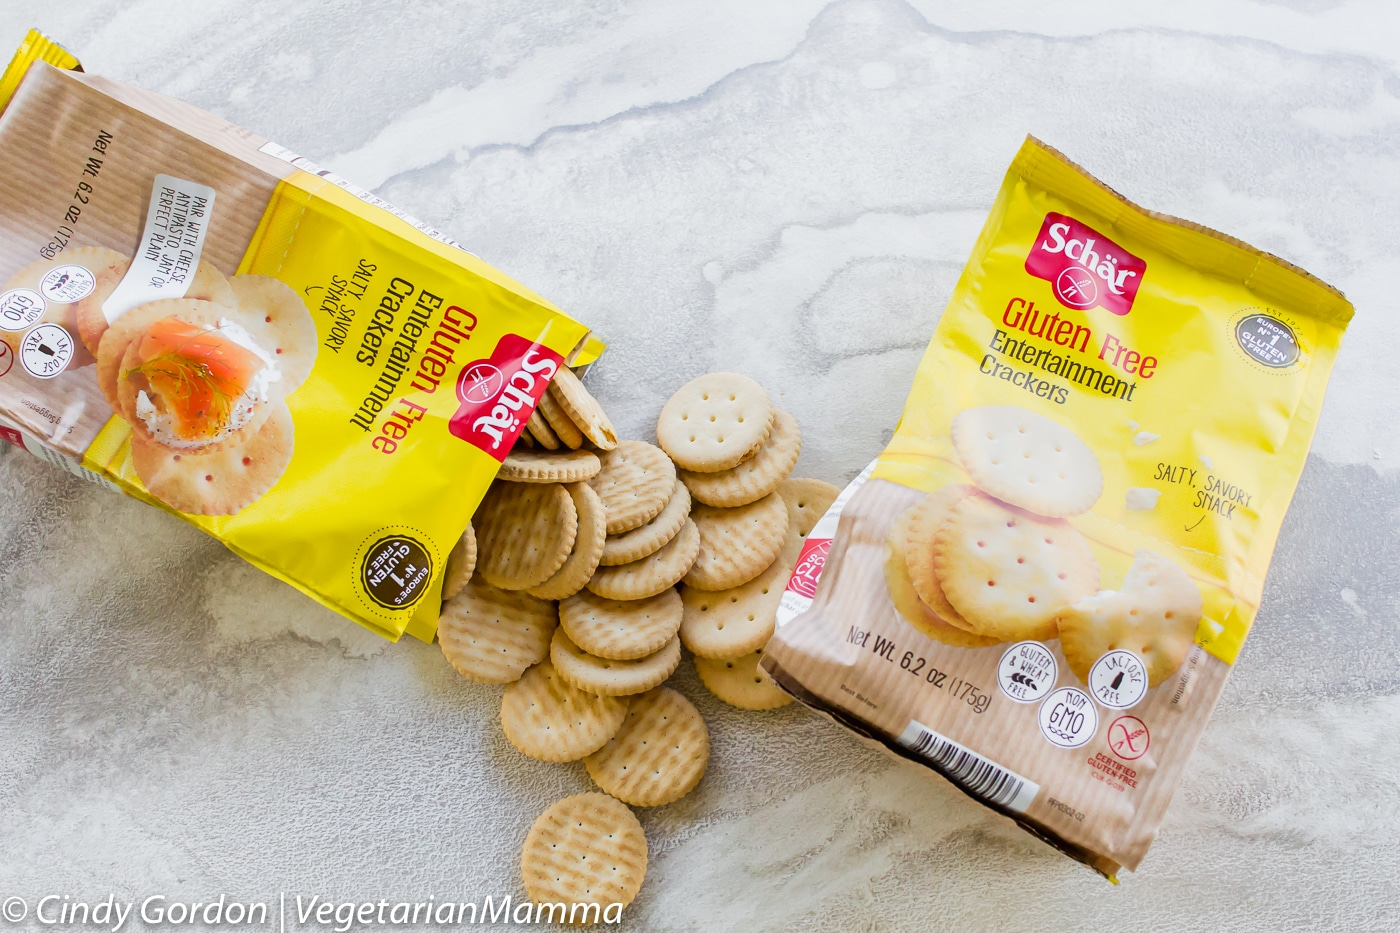 two packages of Schar Entertainment Crackers